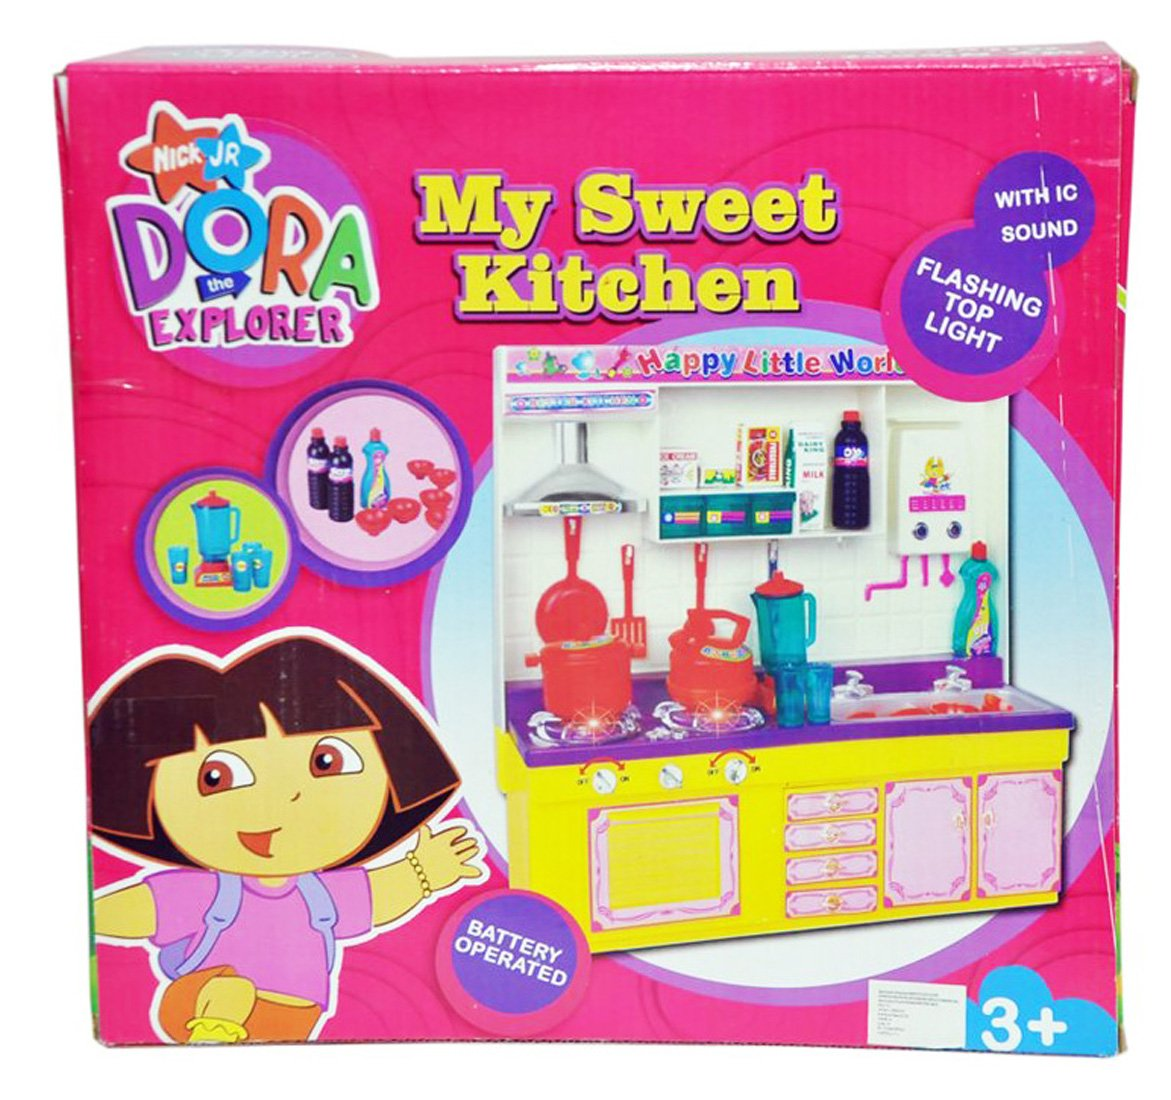 Buy Nyrwana Dora Kitchen Set Pink Online At Low Prices In India Amazon In